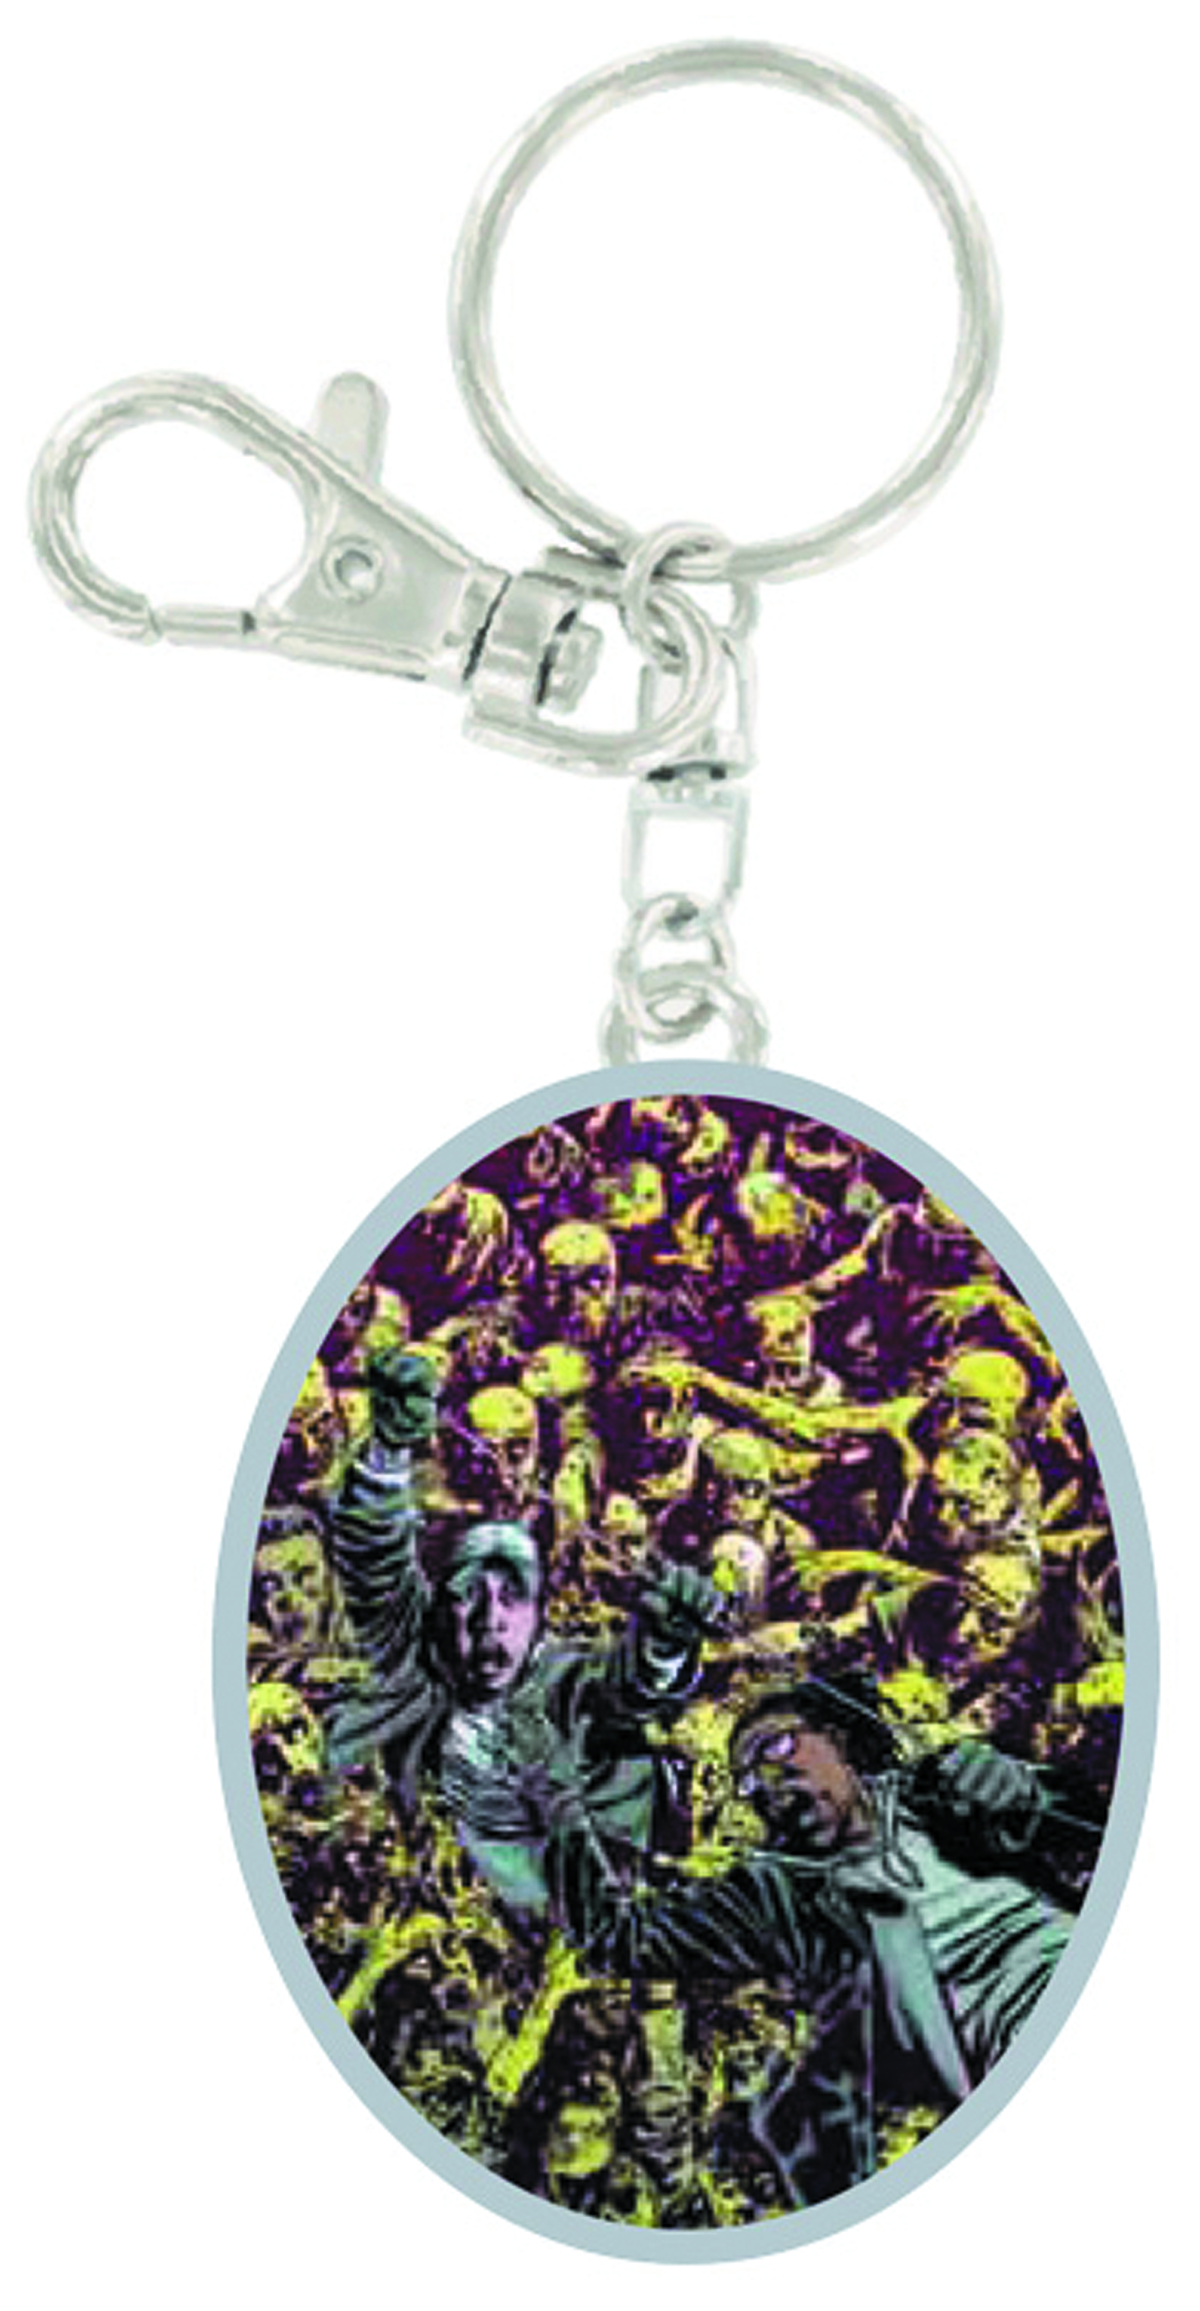 WALKING DEAD ZOMBIE MOB KEYCHAIN